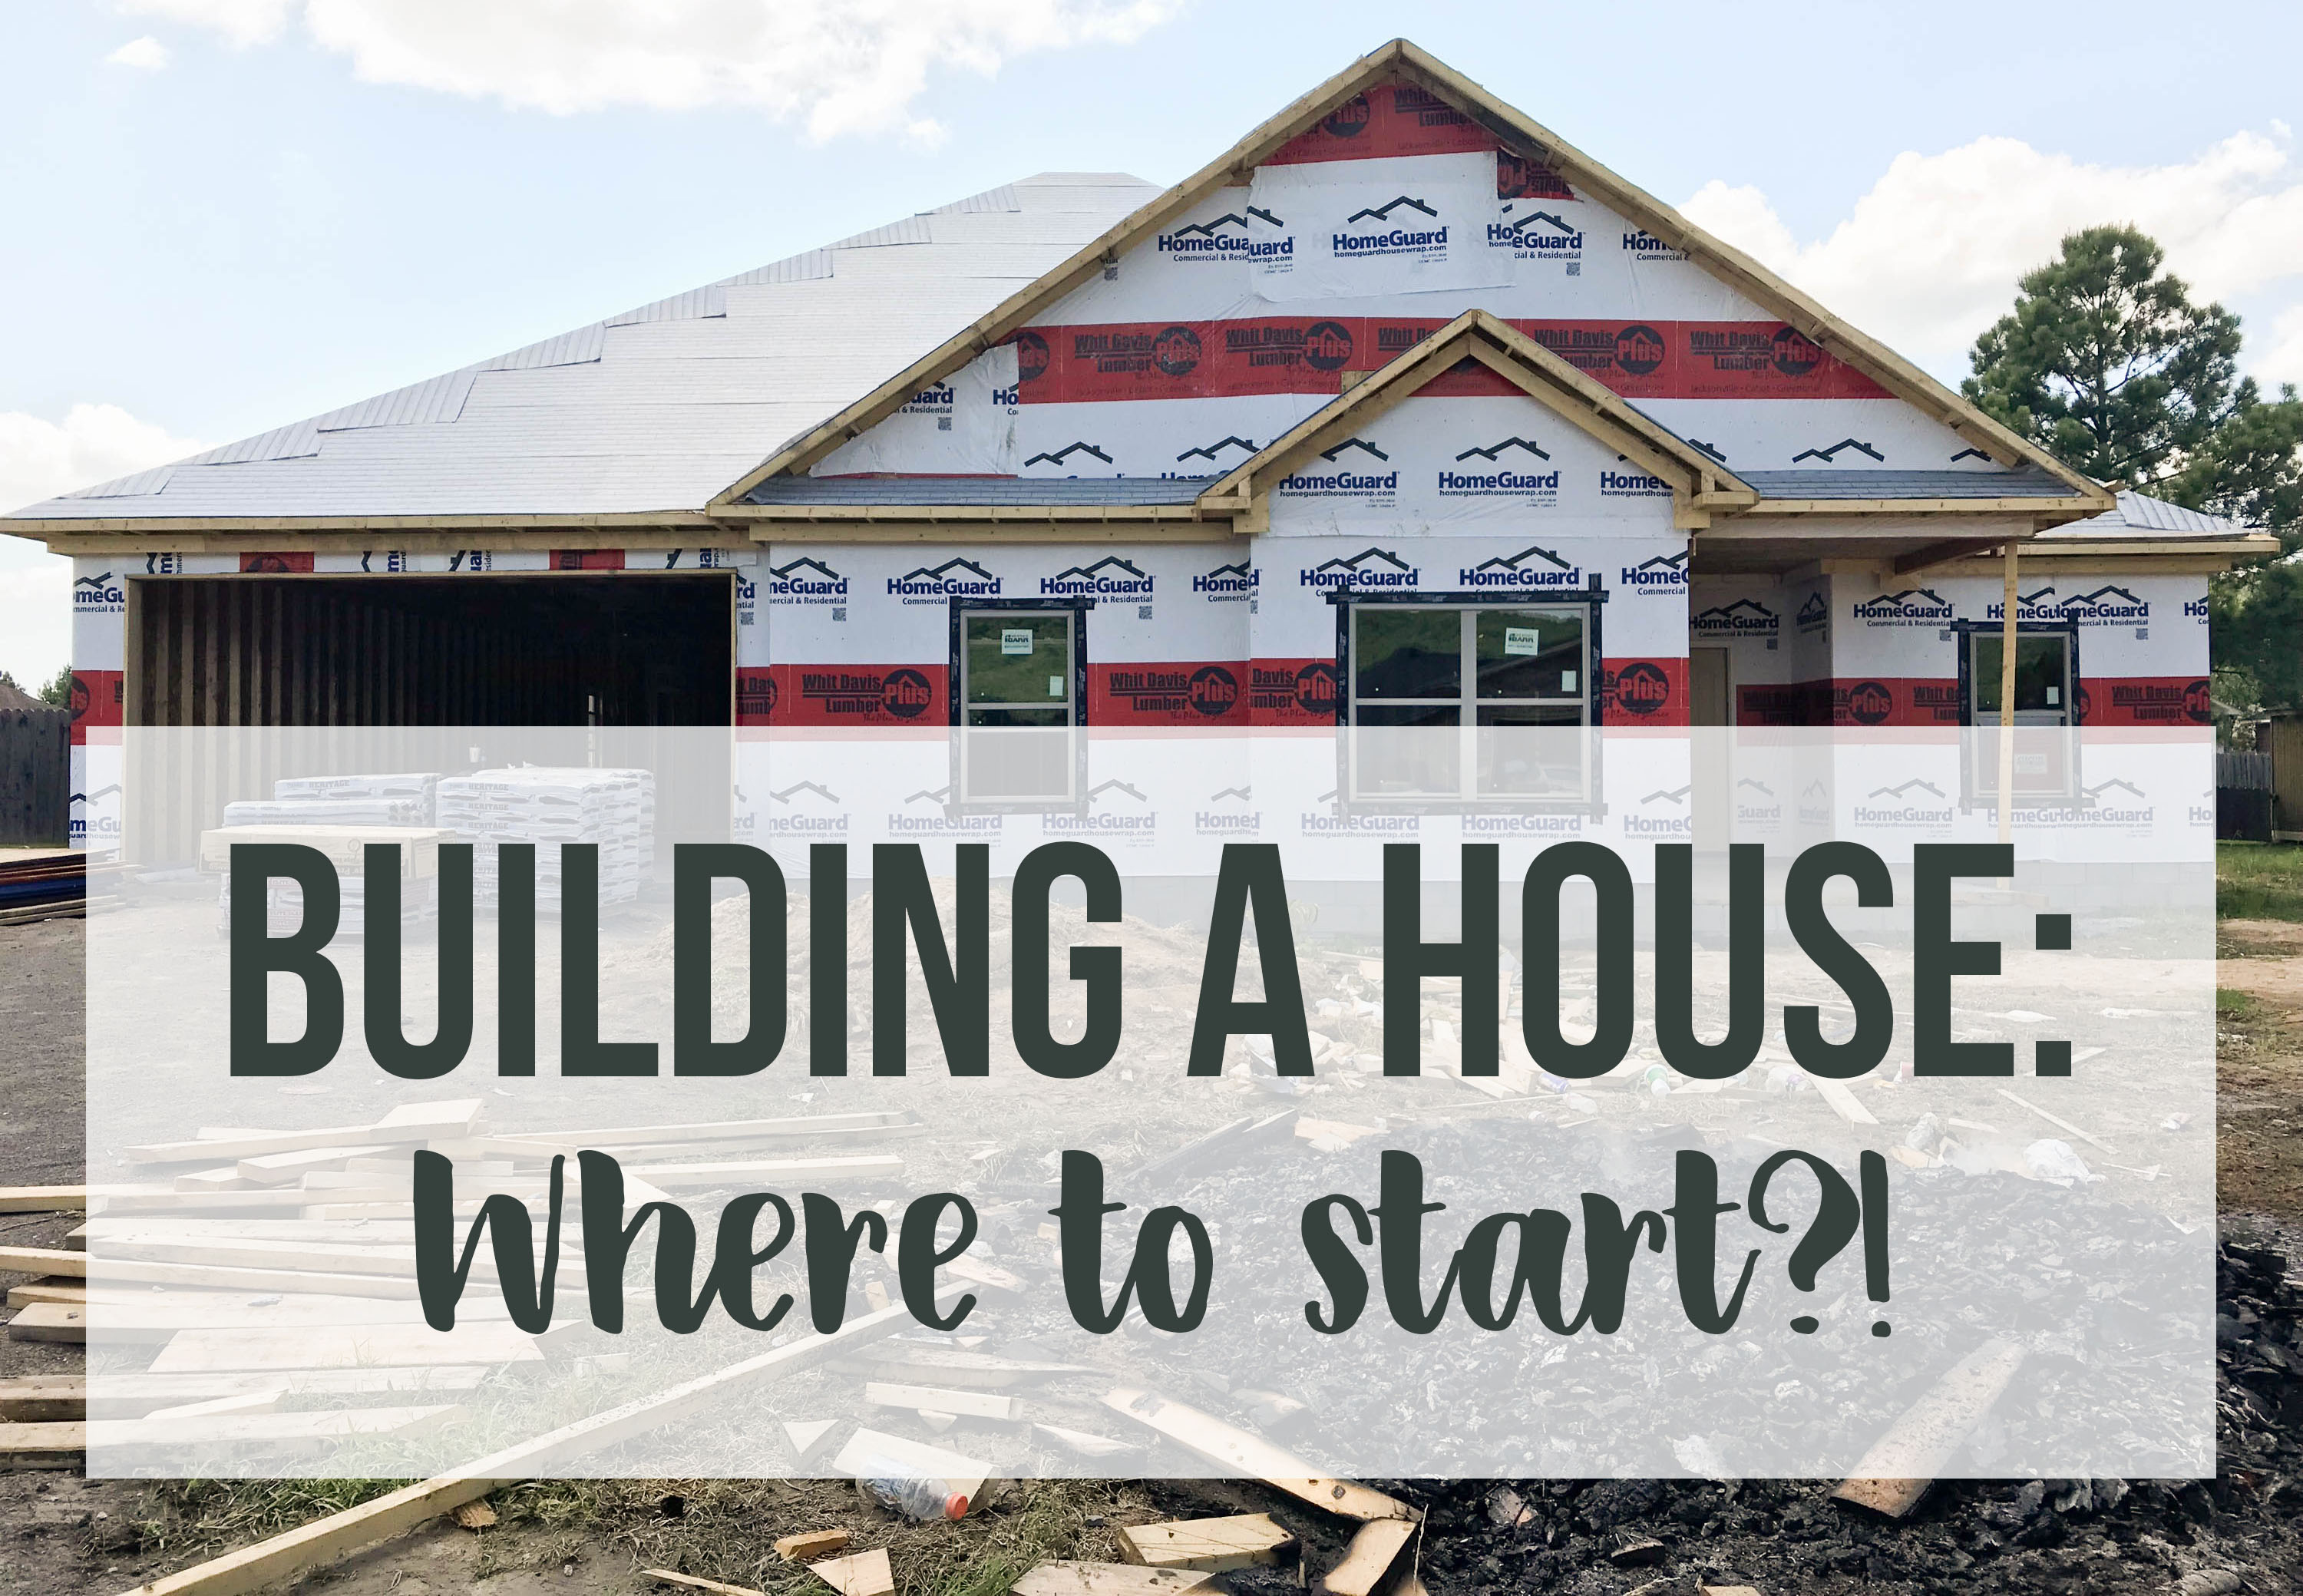 Building a house where to start allie young blog for Where to start when building a house